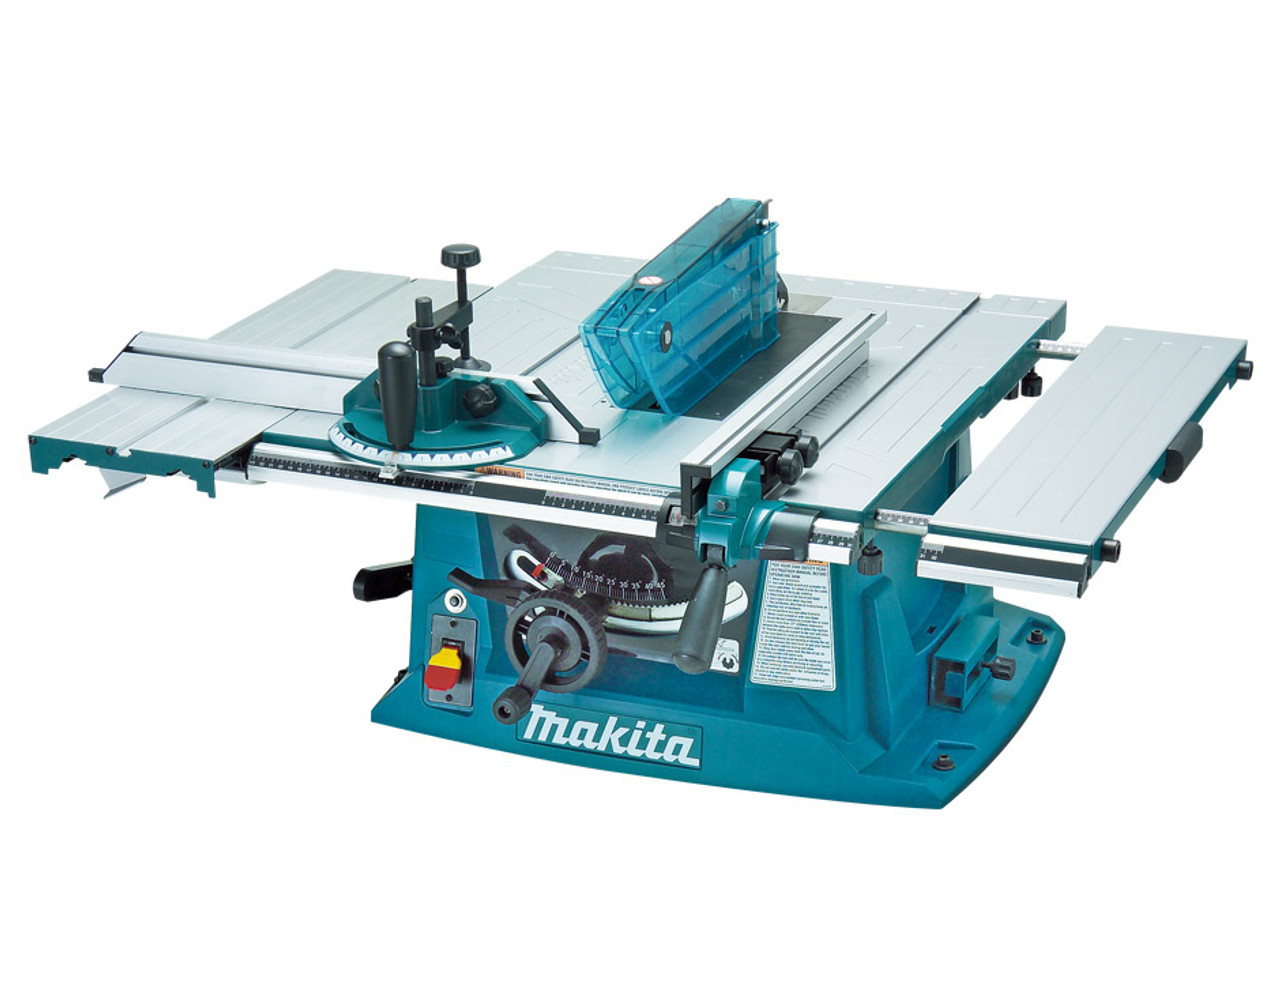 hanging chair mitre 10 toddler desk and table saw 255mm 1500w mlt100 makita banner